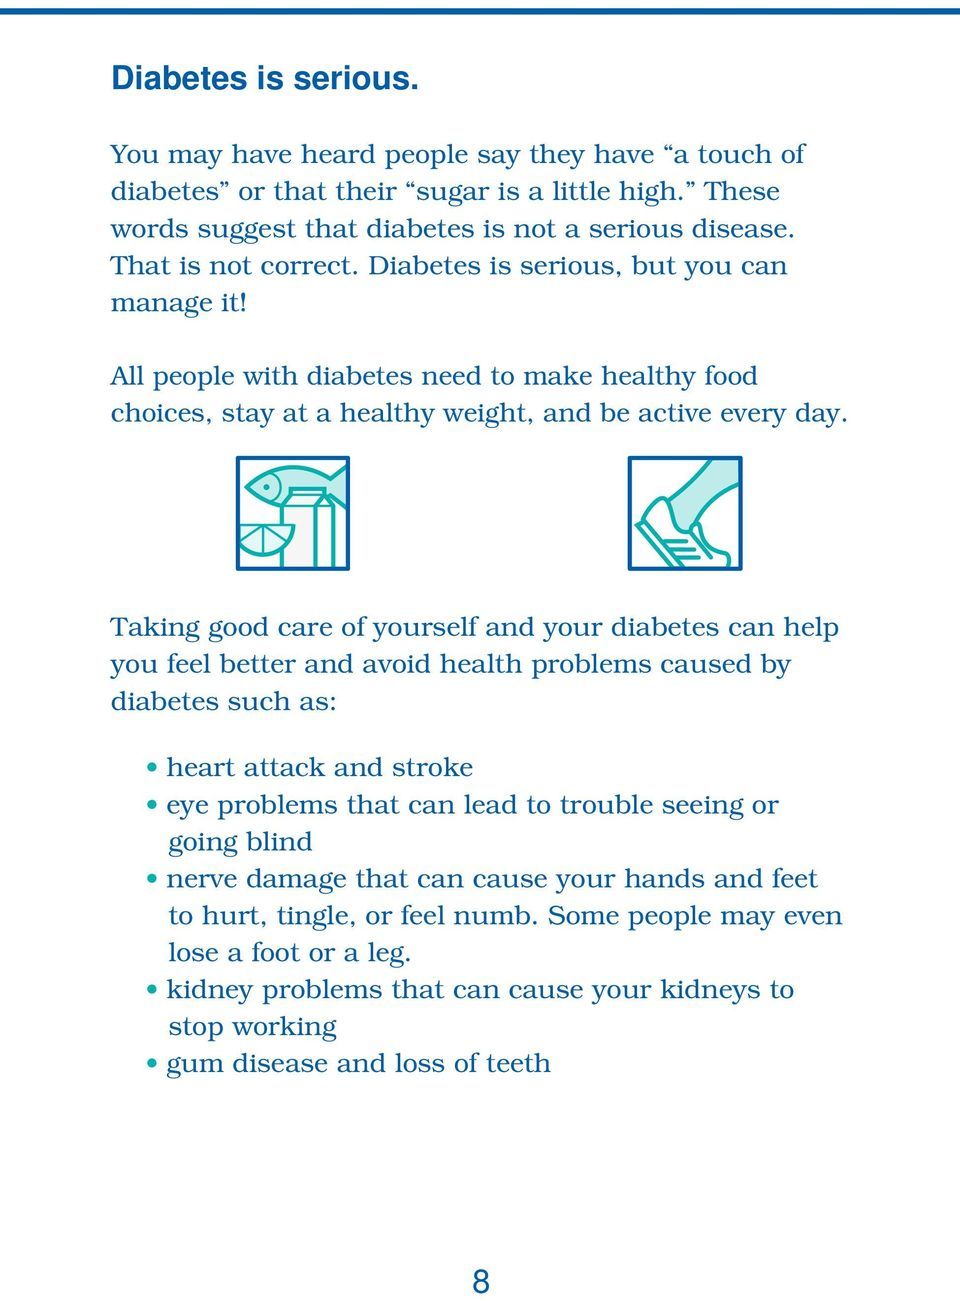 Taking good care of yourself and your diabetes can help you feel better and avoid health problems caused by diabetes such as: heart attack and stroke eye problems that can lead to trouble